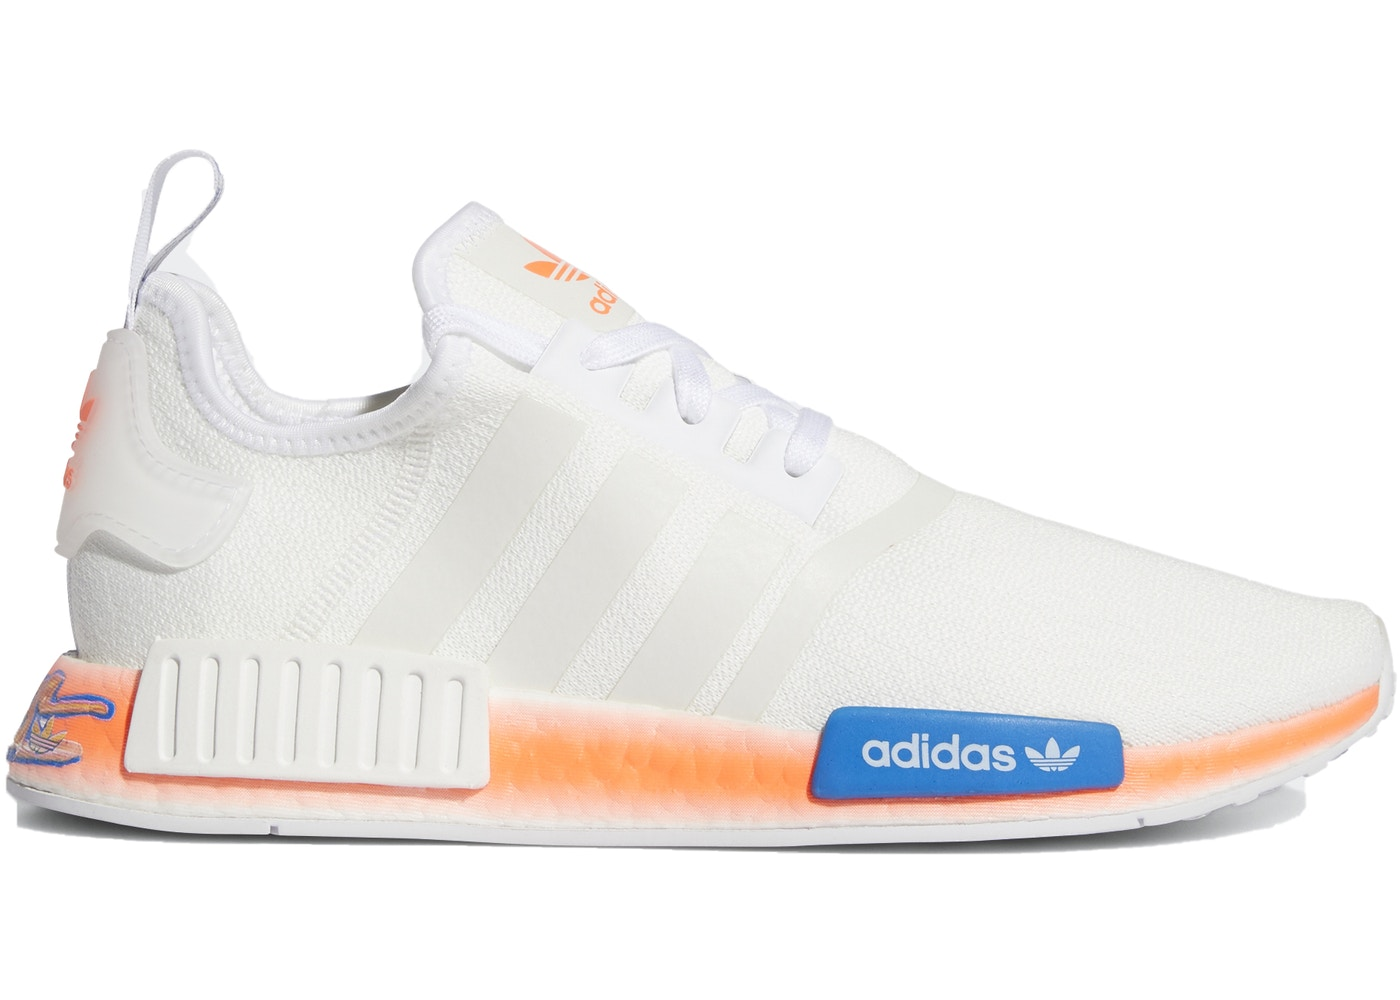 Adidas Nmd R1 Cloud White Orange Fv7852